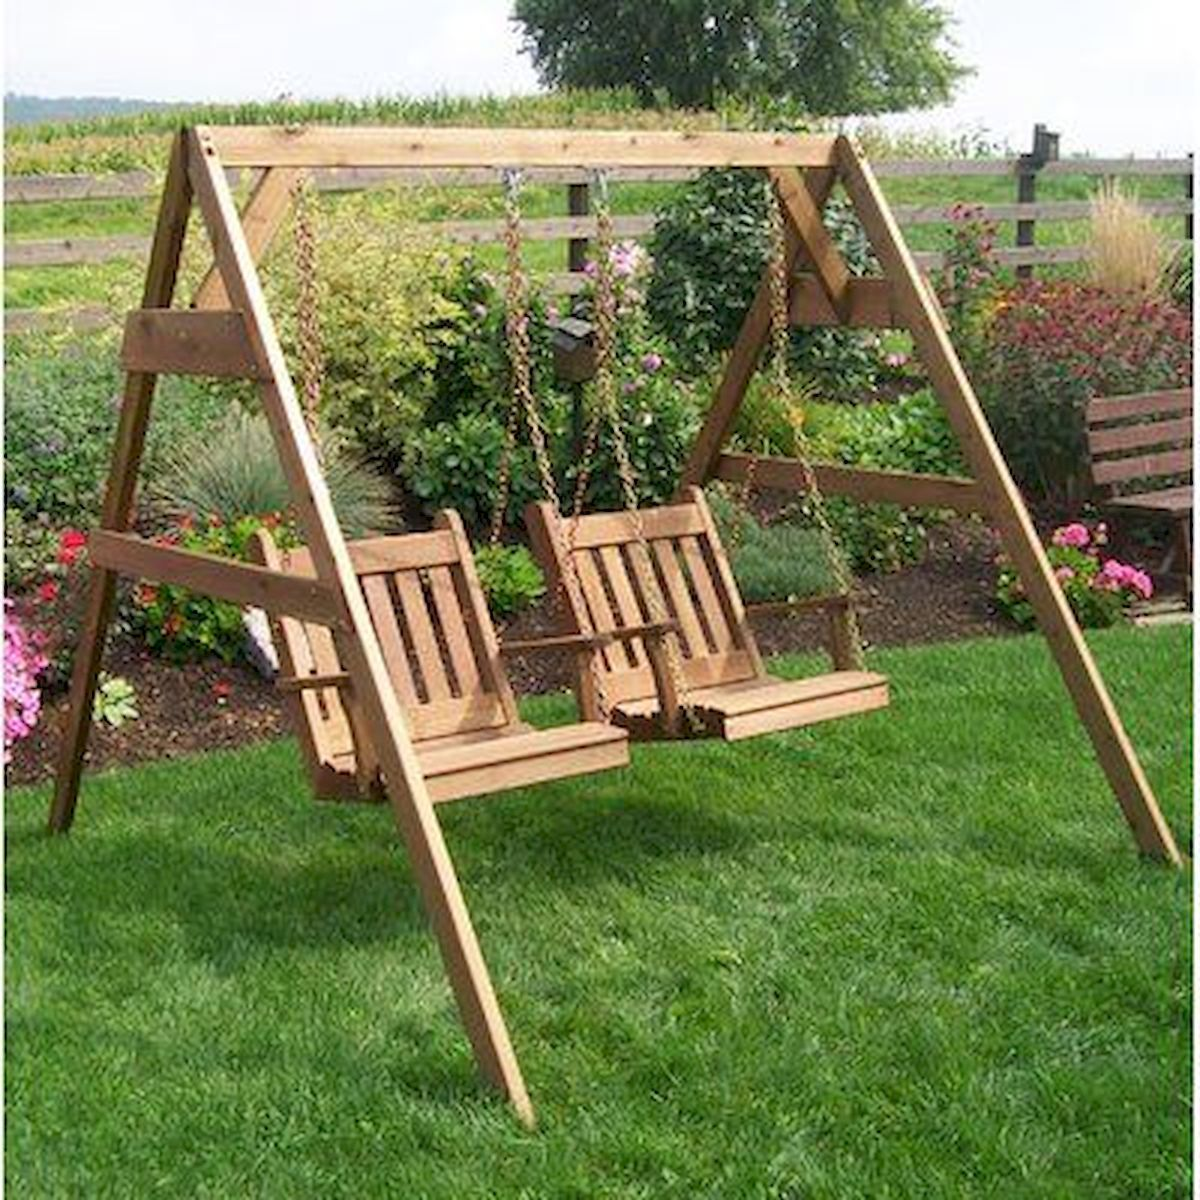 30 Fantastic Diy Wooden Pallet Swing Chair Ideas Swinging Chair Pergola On The Roof Pallet Swing